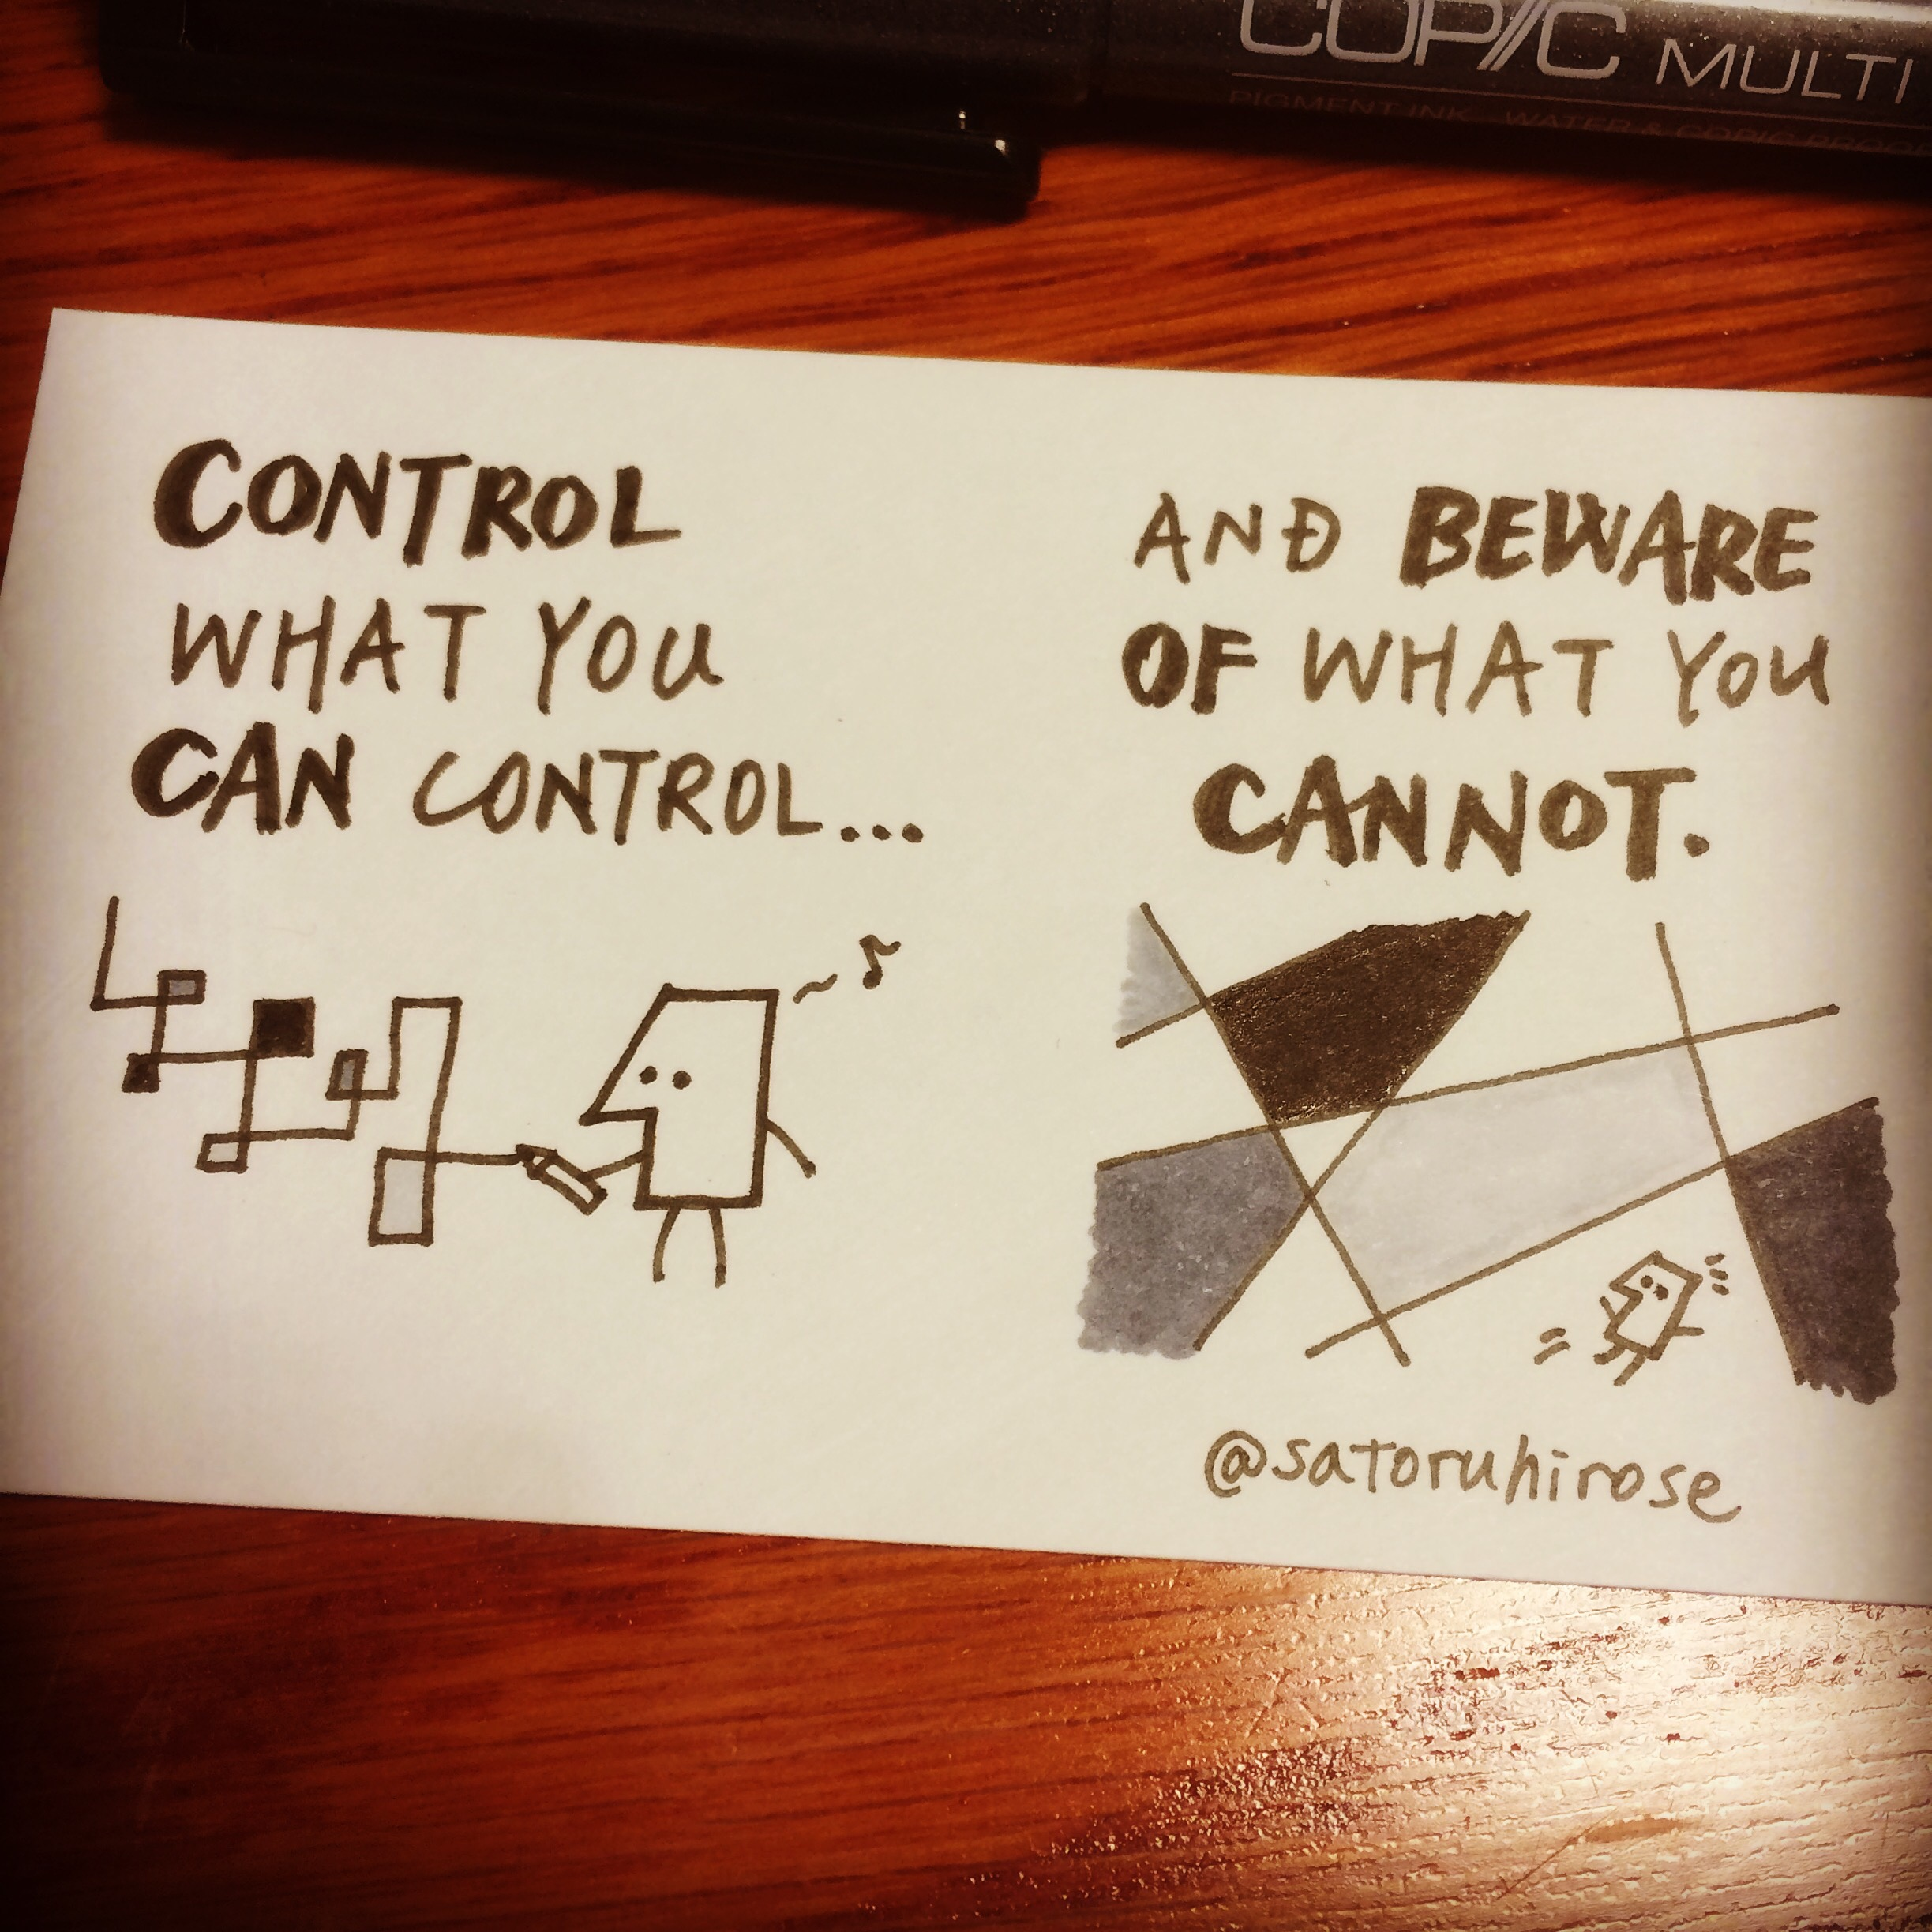 Control what you can control, and beware of what you cannot.